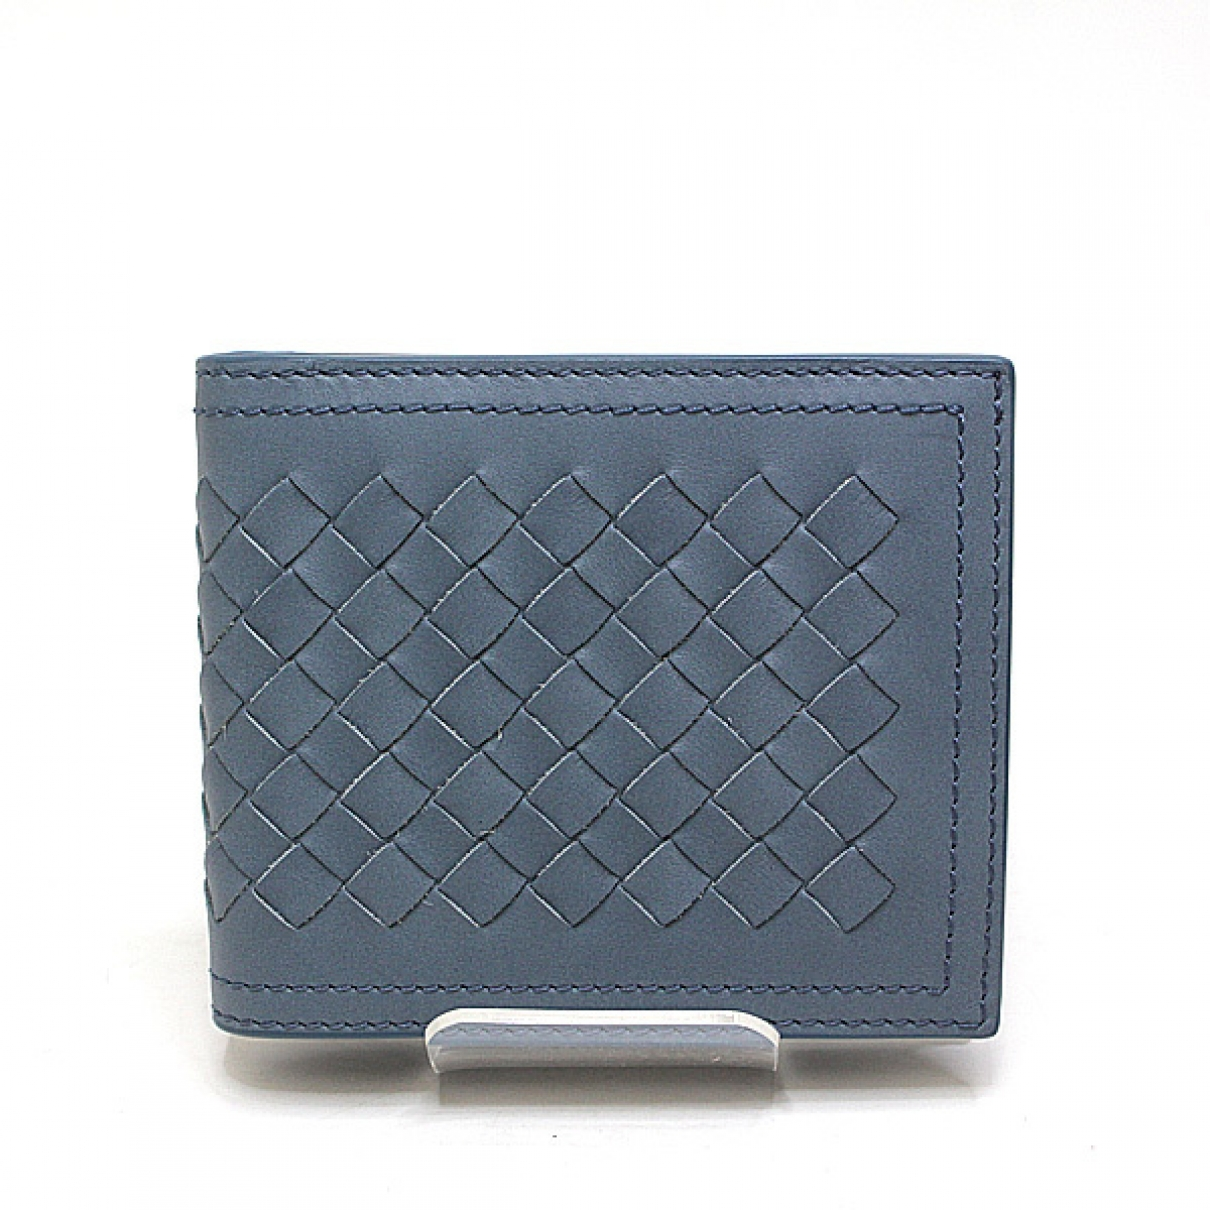 Bottega Veneta Intrecciato Blue Leather wallet for Women \N